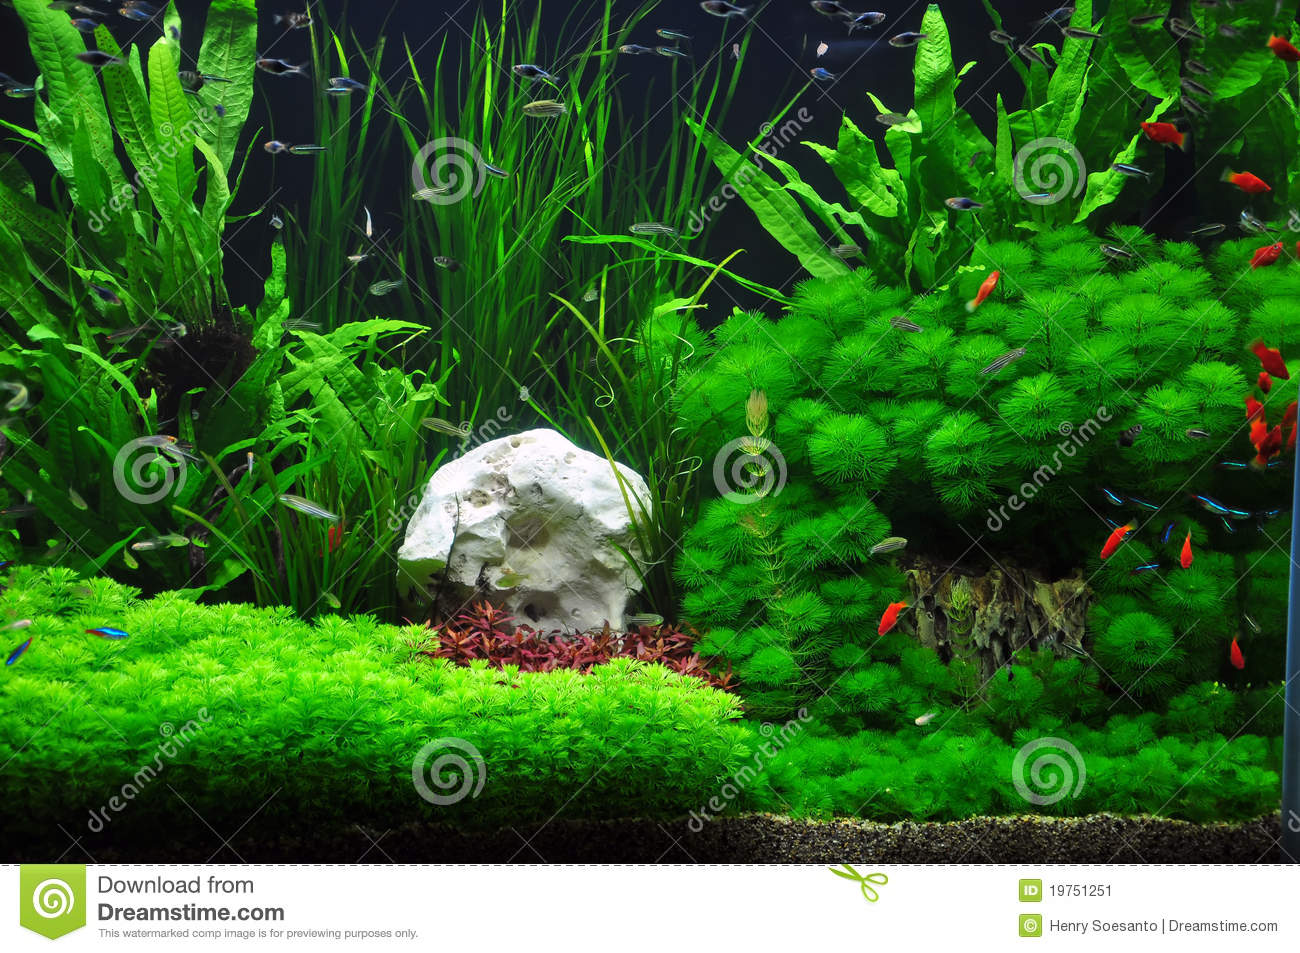 Wallpaper Batu Alam 3d Platies Tetras And Mollies In Aquascaping Stock Image